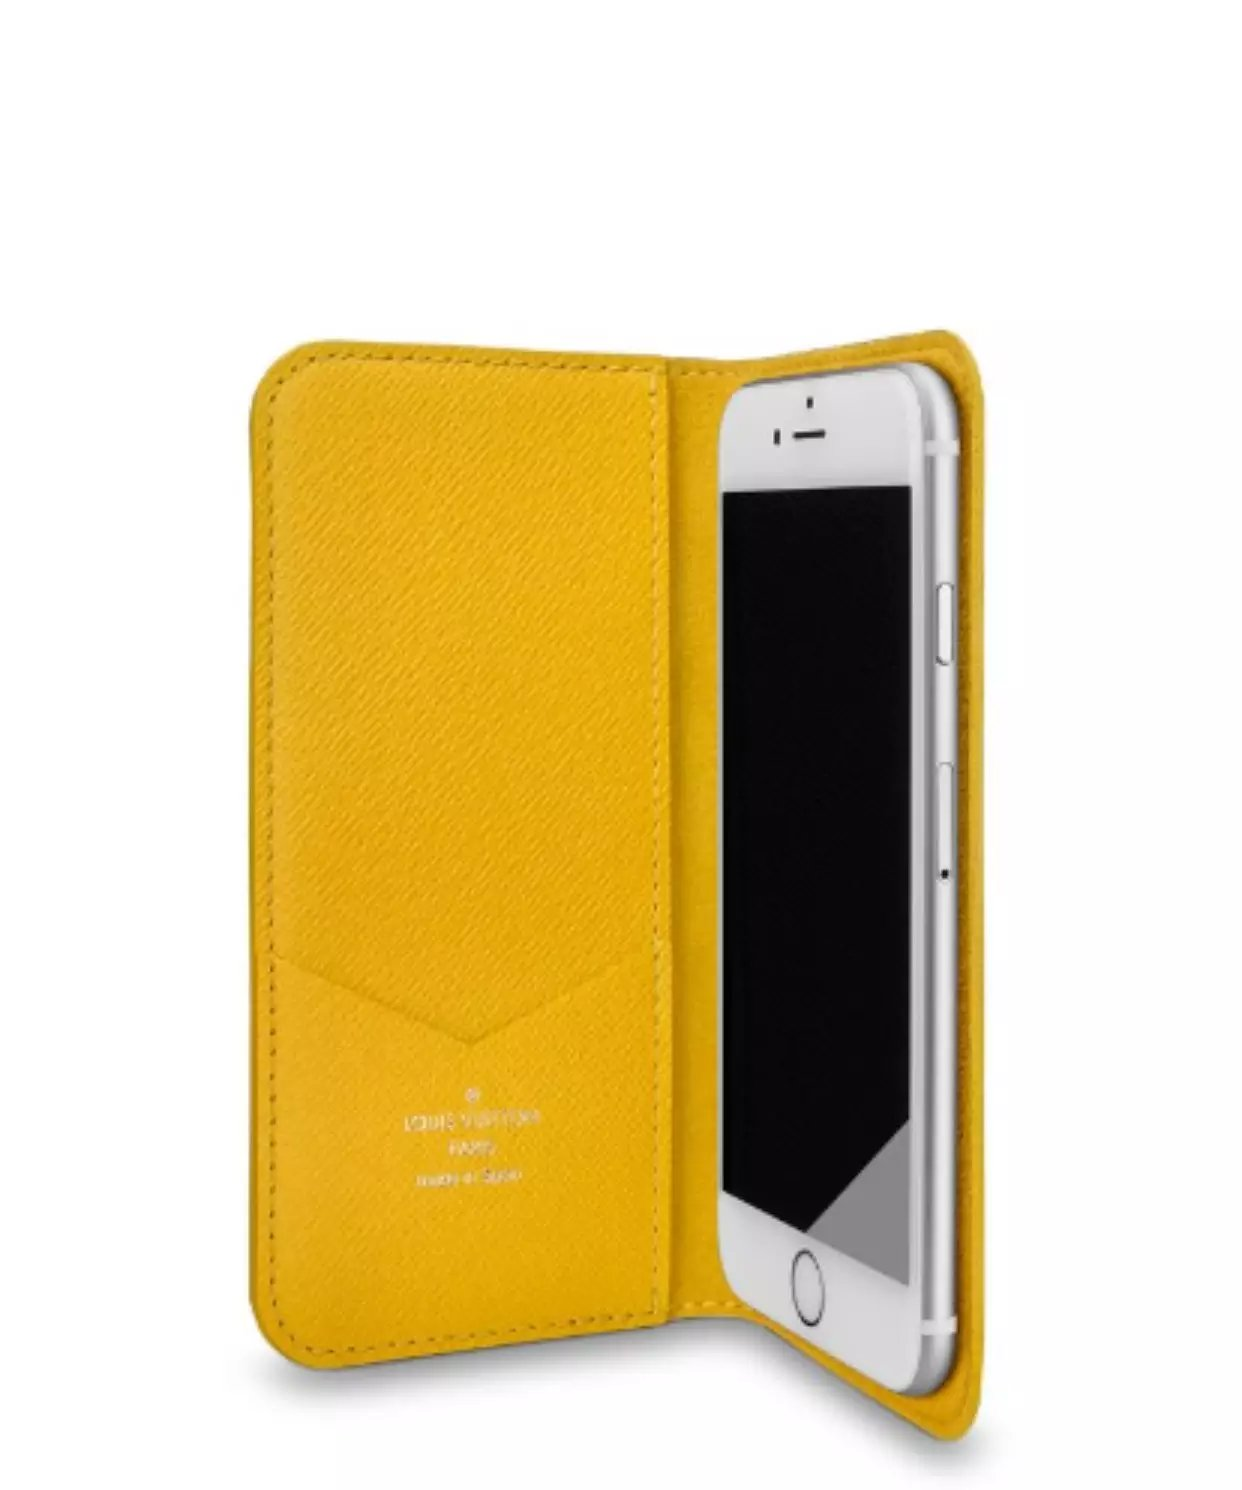 lederhülle iphone iphone gummihülle Louis Vuitton iphone6 hülle iphone 6 hülle mit eigenem foto tasche iphone 6 iphone 6 ca6 gestalten gürteltasche iphone handy cover design iphone hülle 6lbst designen